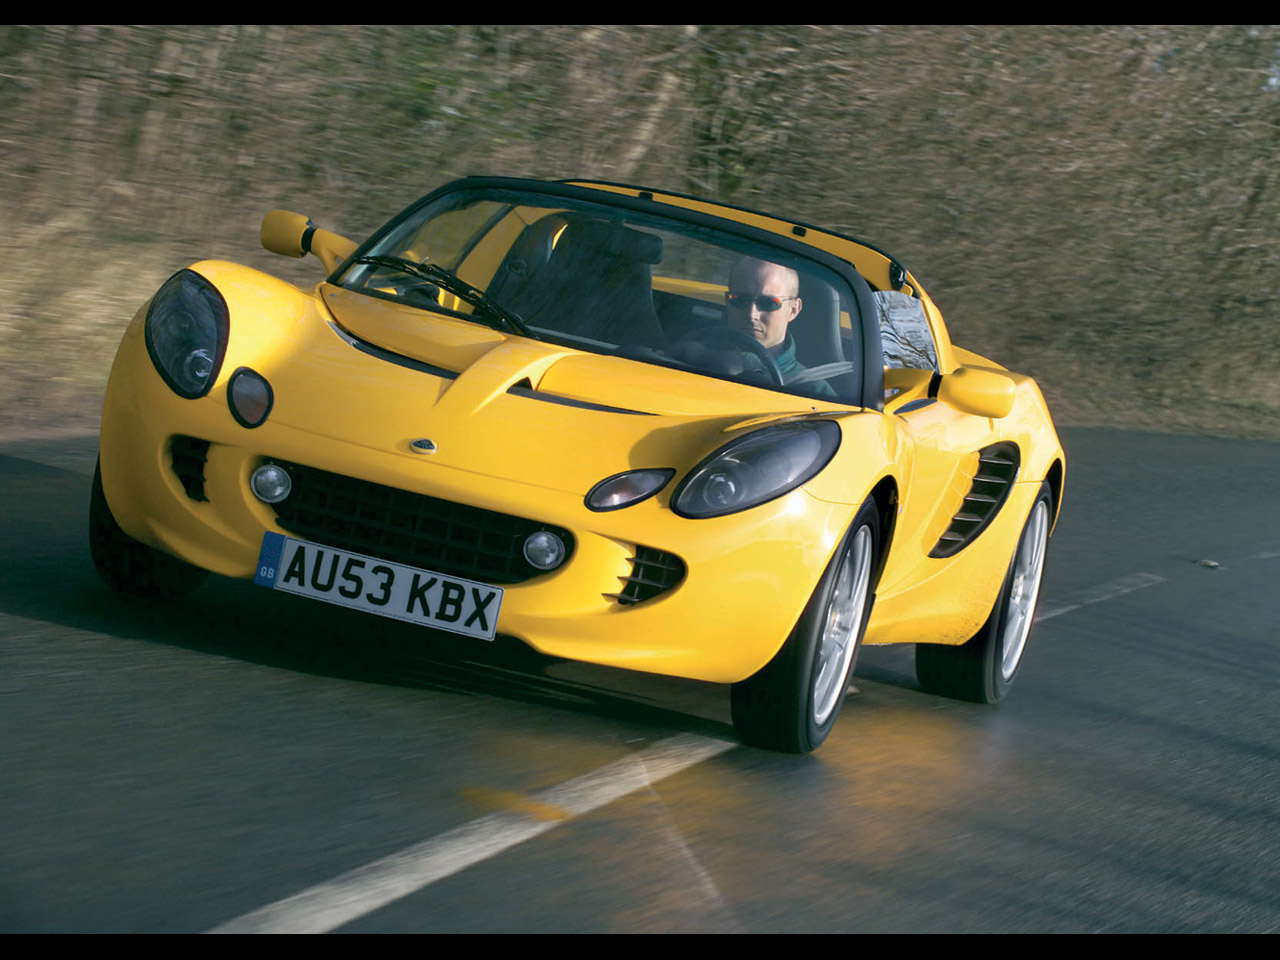 Lotus (official topic) 2004-Lotus-Elise-111R-Front-Angle-1280x960